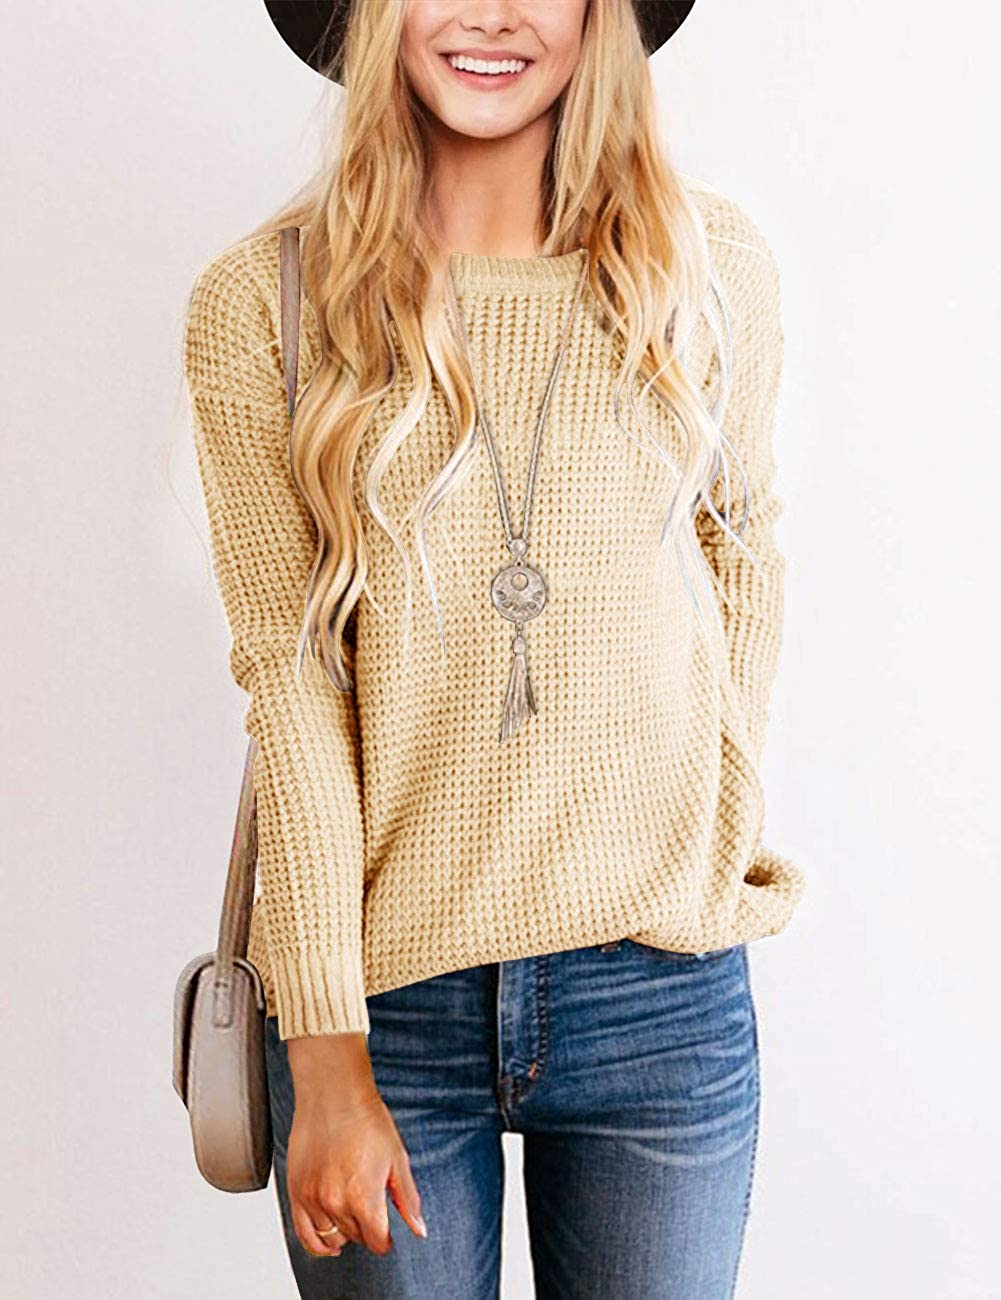 TECREW Womens Waffle Knit Pullover Sweaters Long Sleeve Casual Jumper Tops